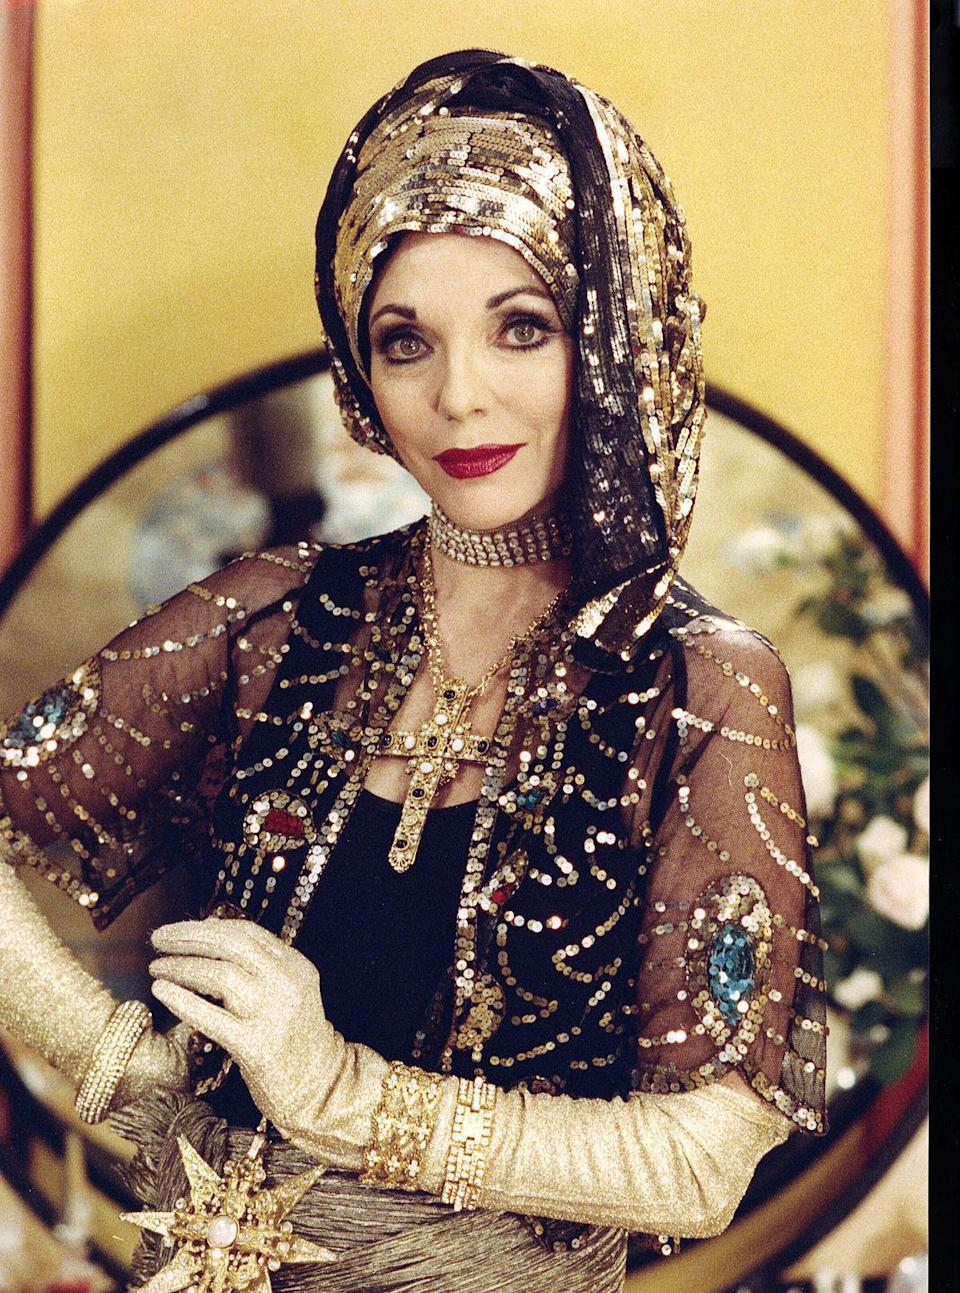 """<p>Collins once called herself a """"fiend for costume jewellery"""", with """"countless pairs of rhinestone earrings"""", so she was aptly attired in layers of diamante jewels and sequins for her role as a wealthy socialite in the film Decadence. </p>"""